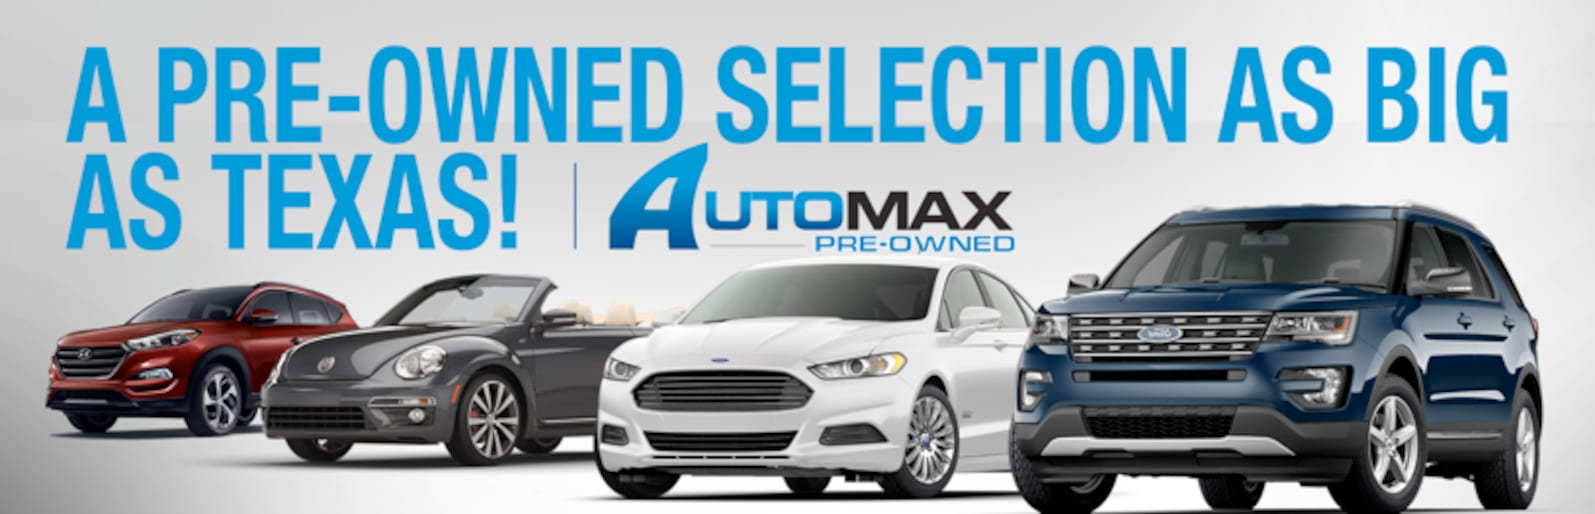 Automax Pre Owned Center New Dealership In Killeen Tx